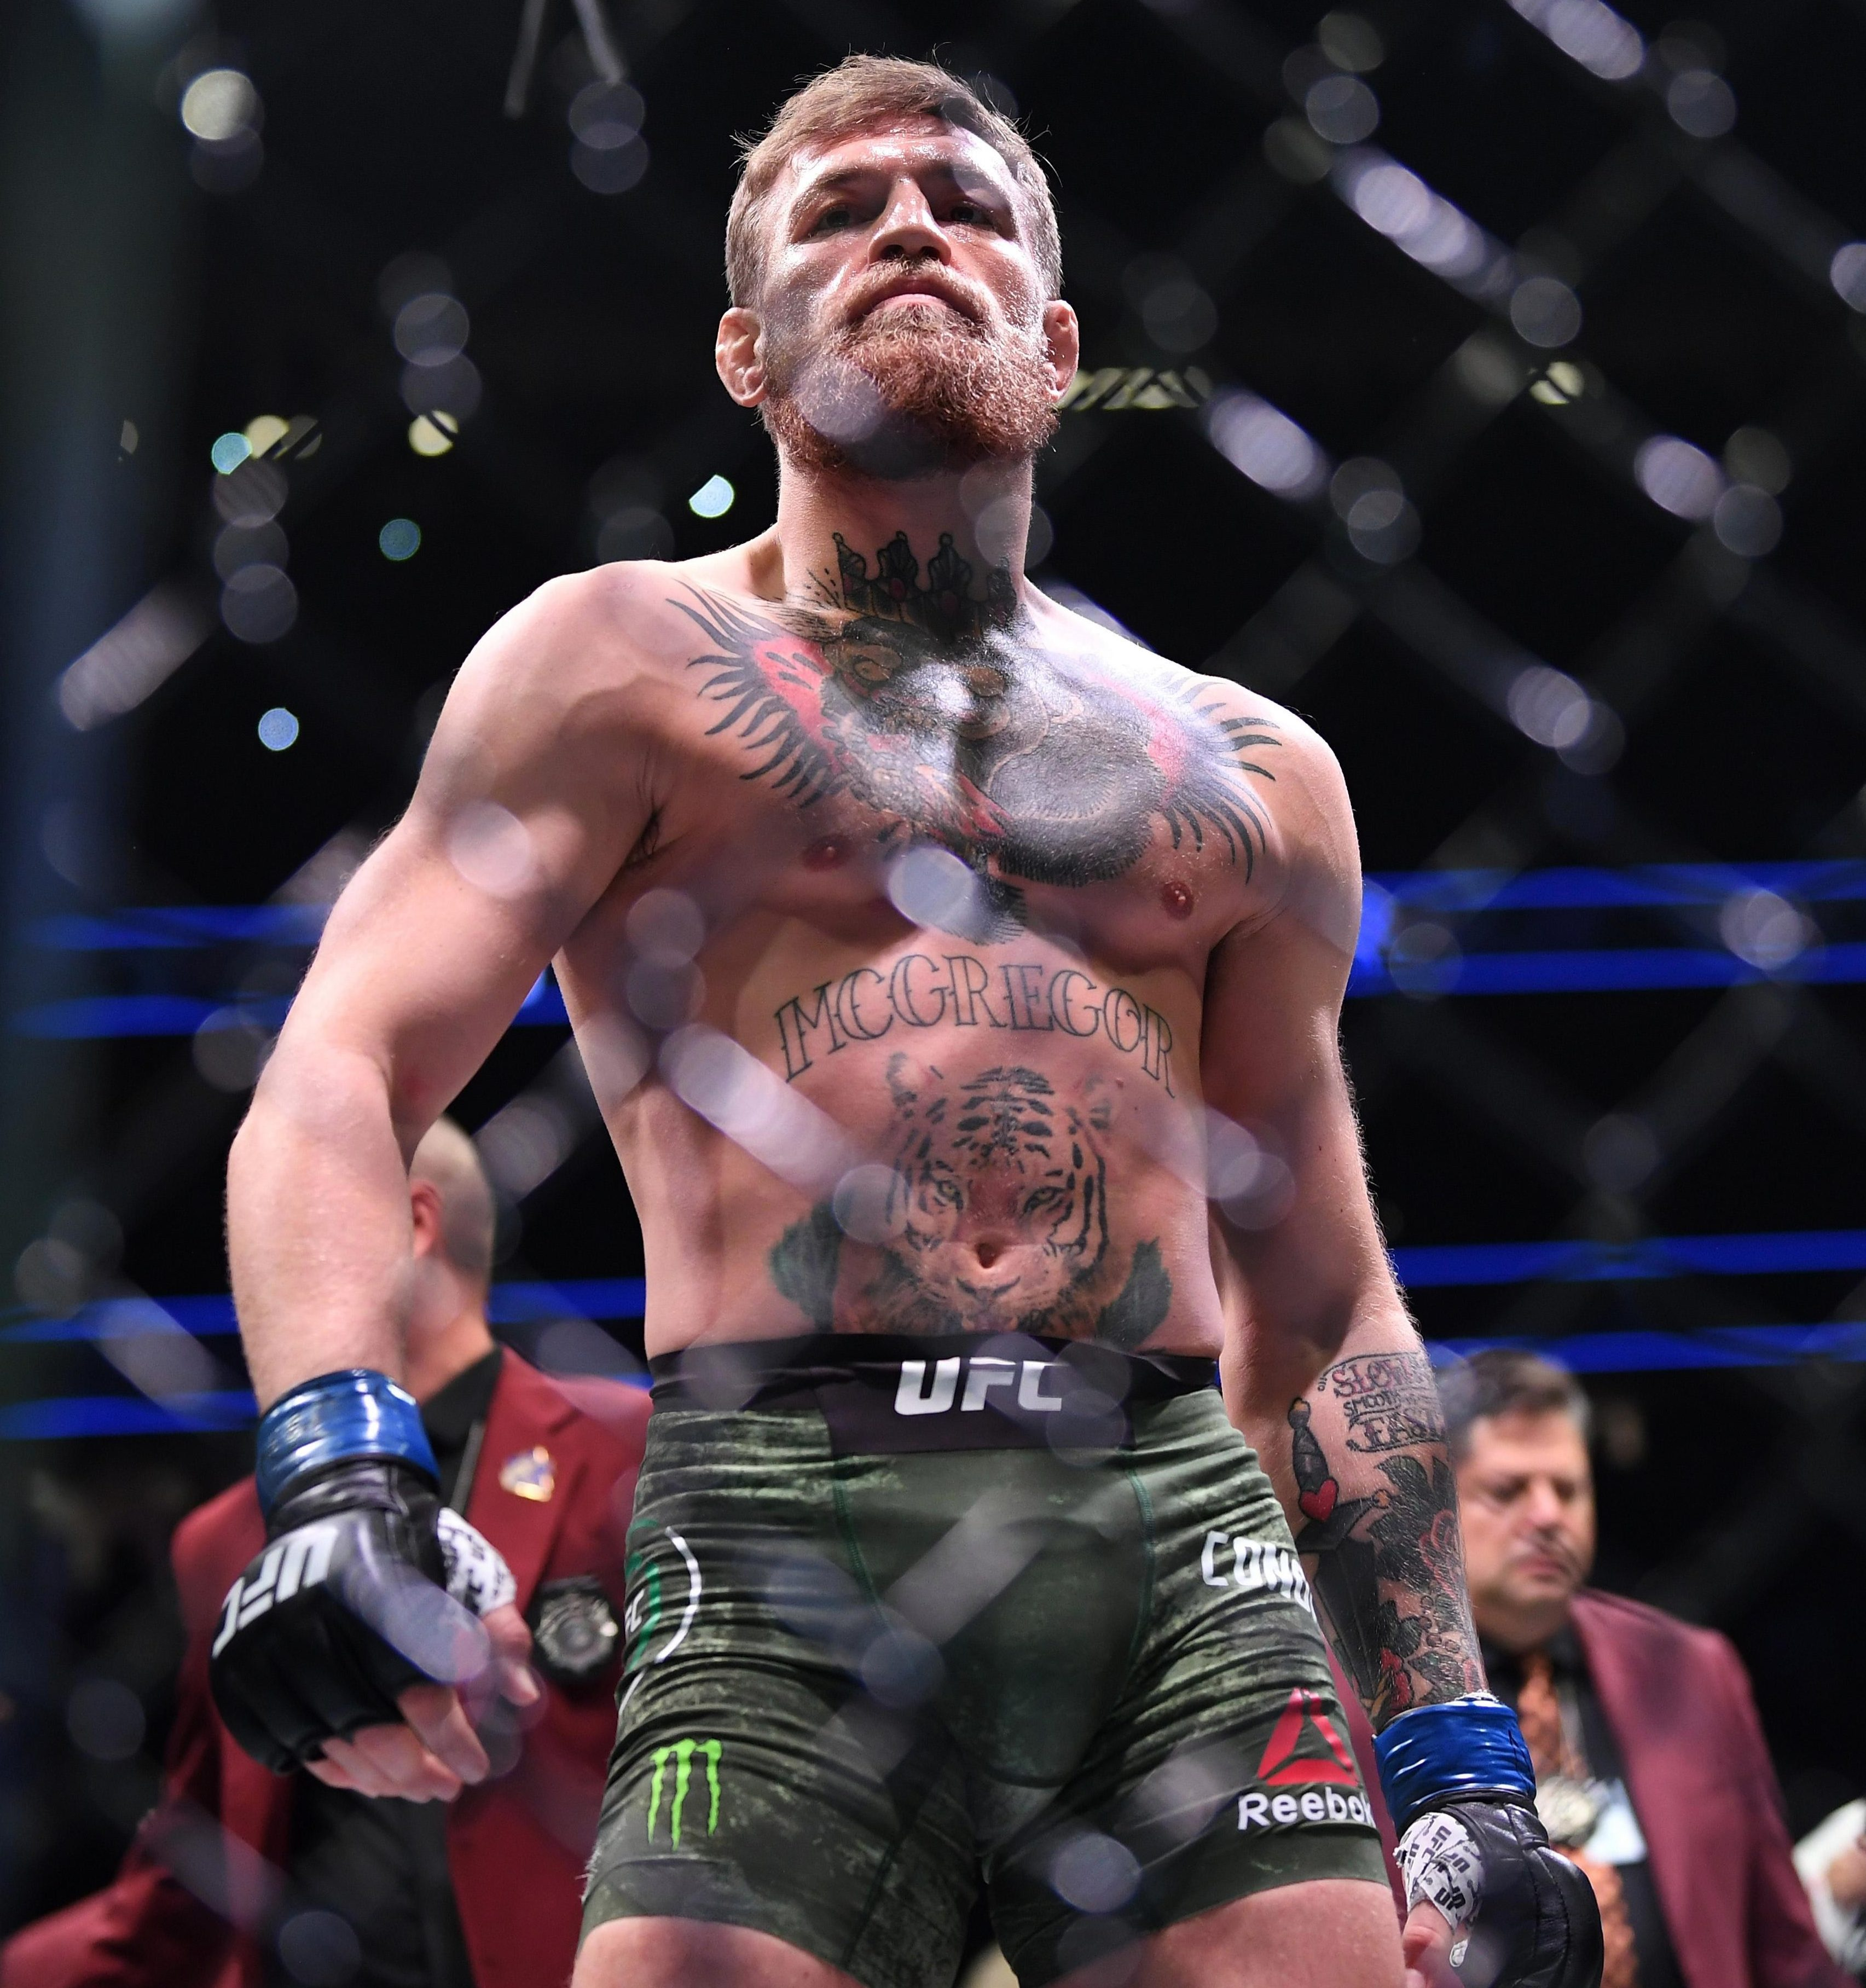 Conor McGregor has been given the go-ahead to return to UFC by its president